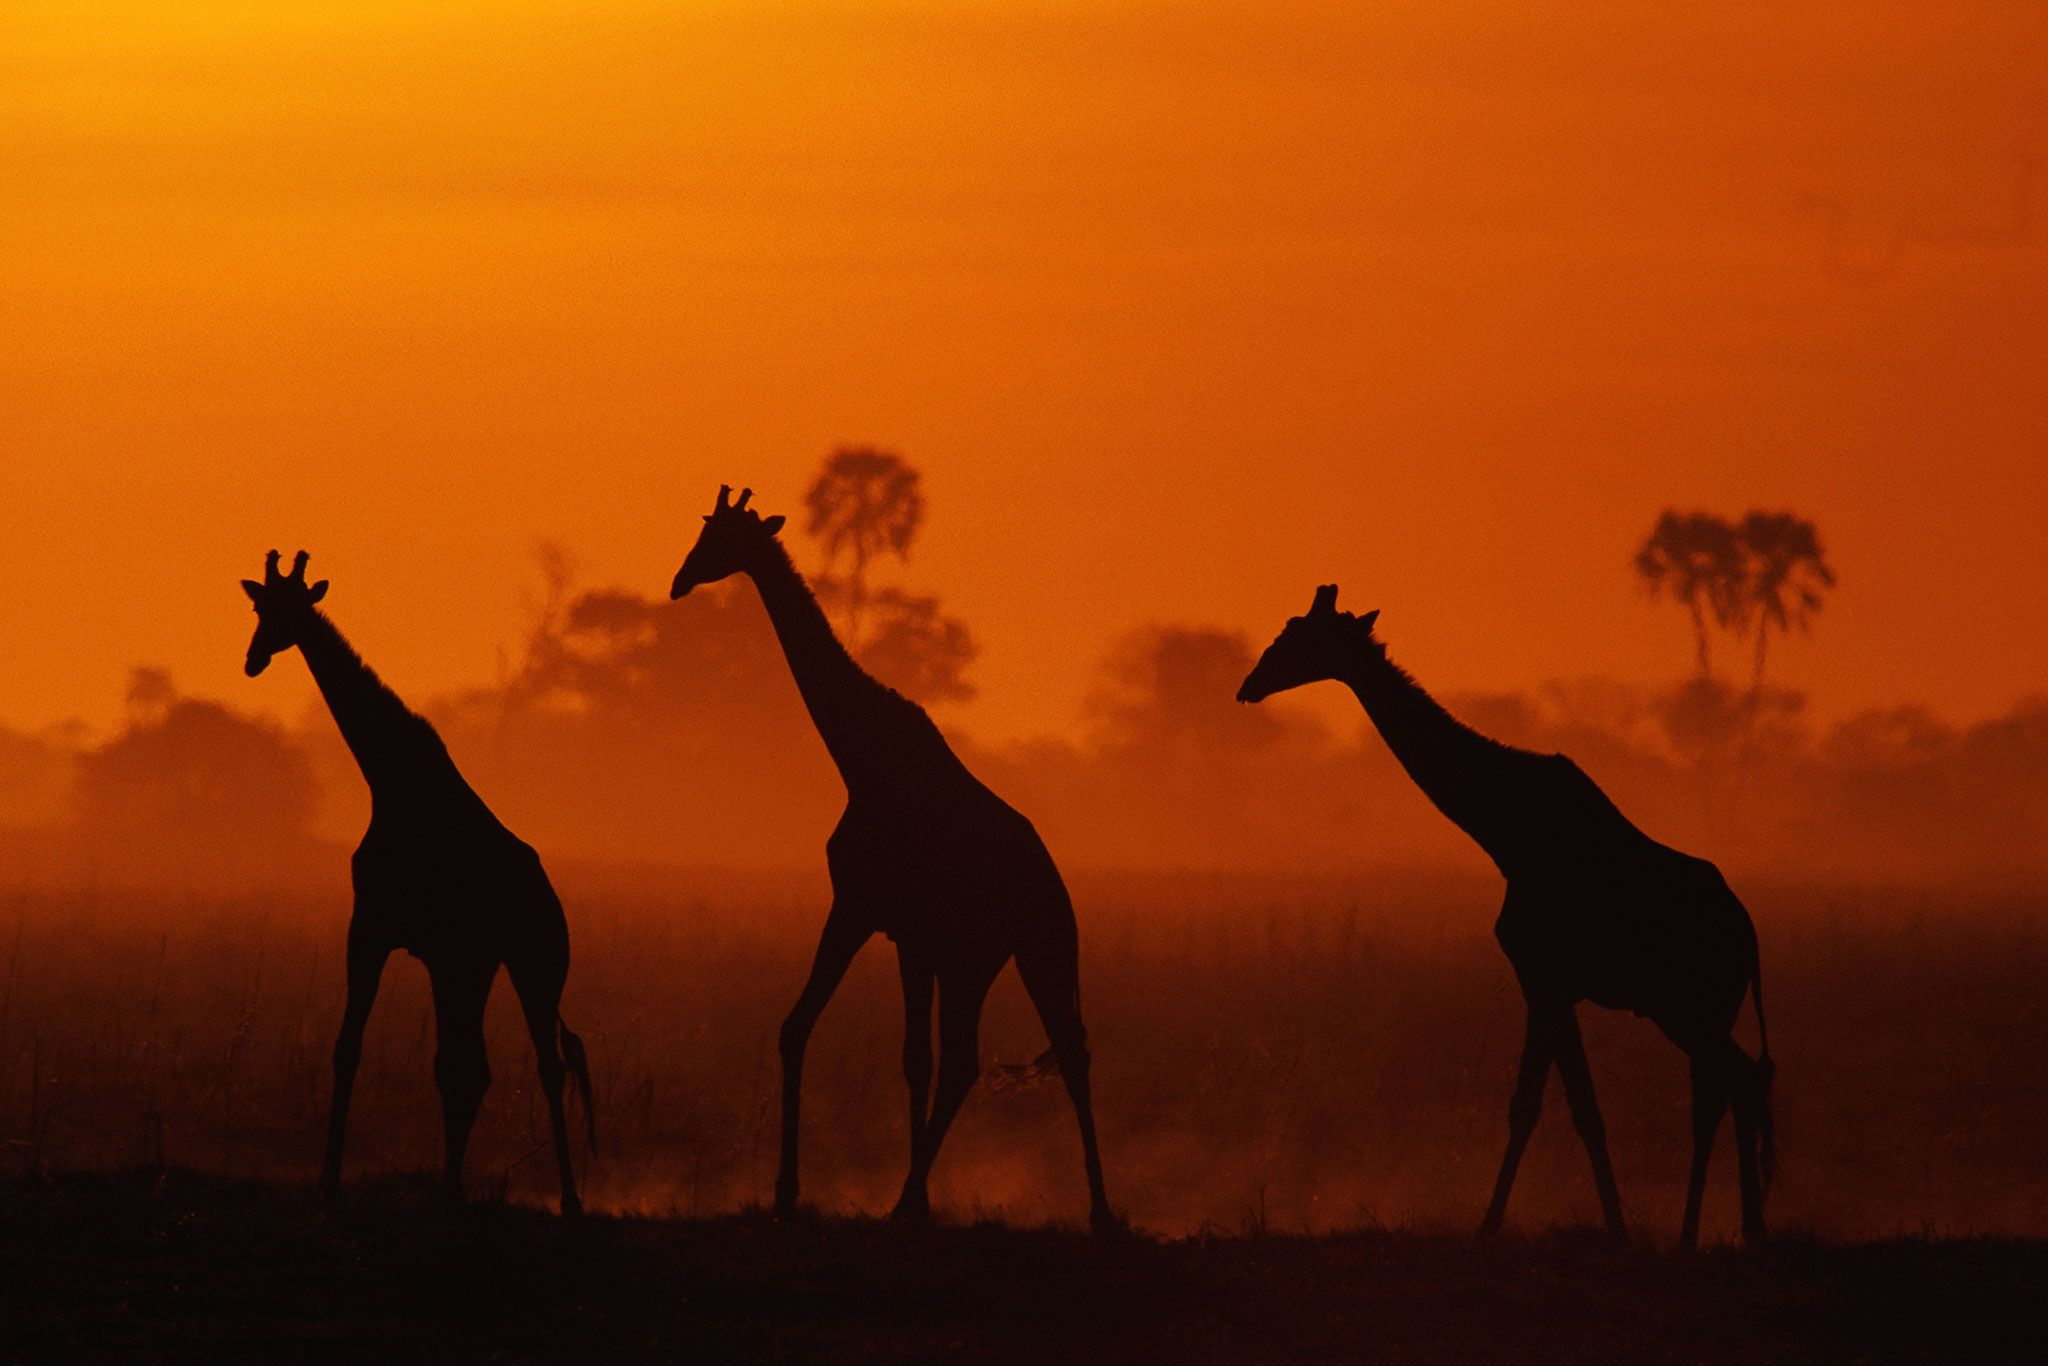 Numbers of the famous African animal have fallen by nearly half in the past 15 years, prompting urgent—and sometimes risky—actions to help.